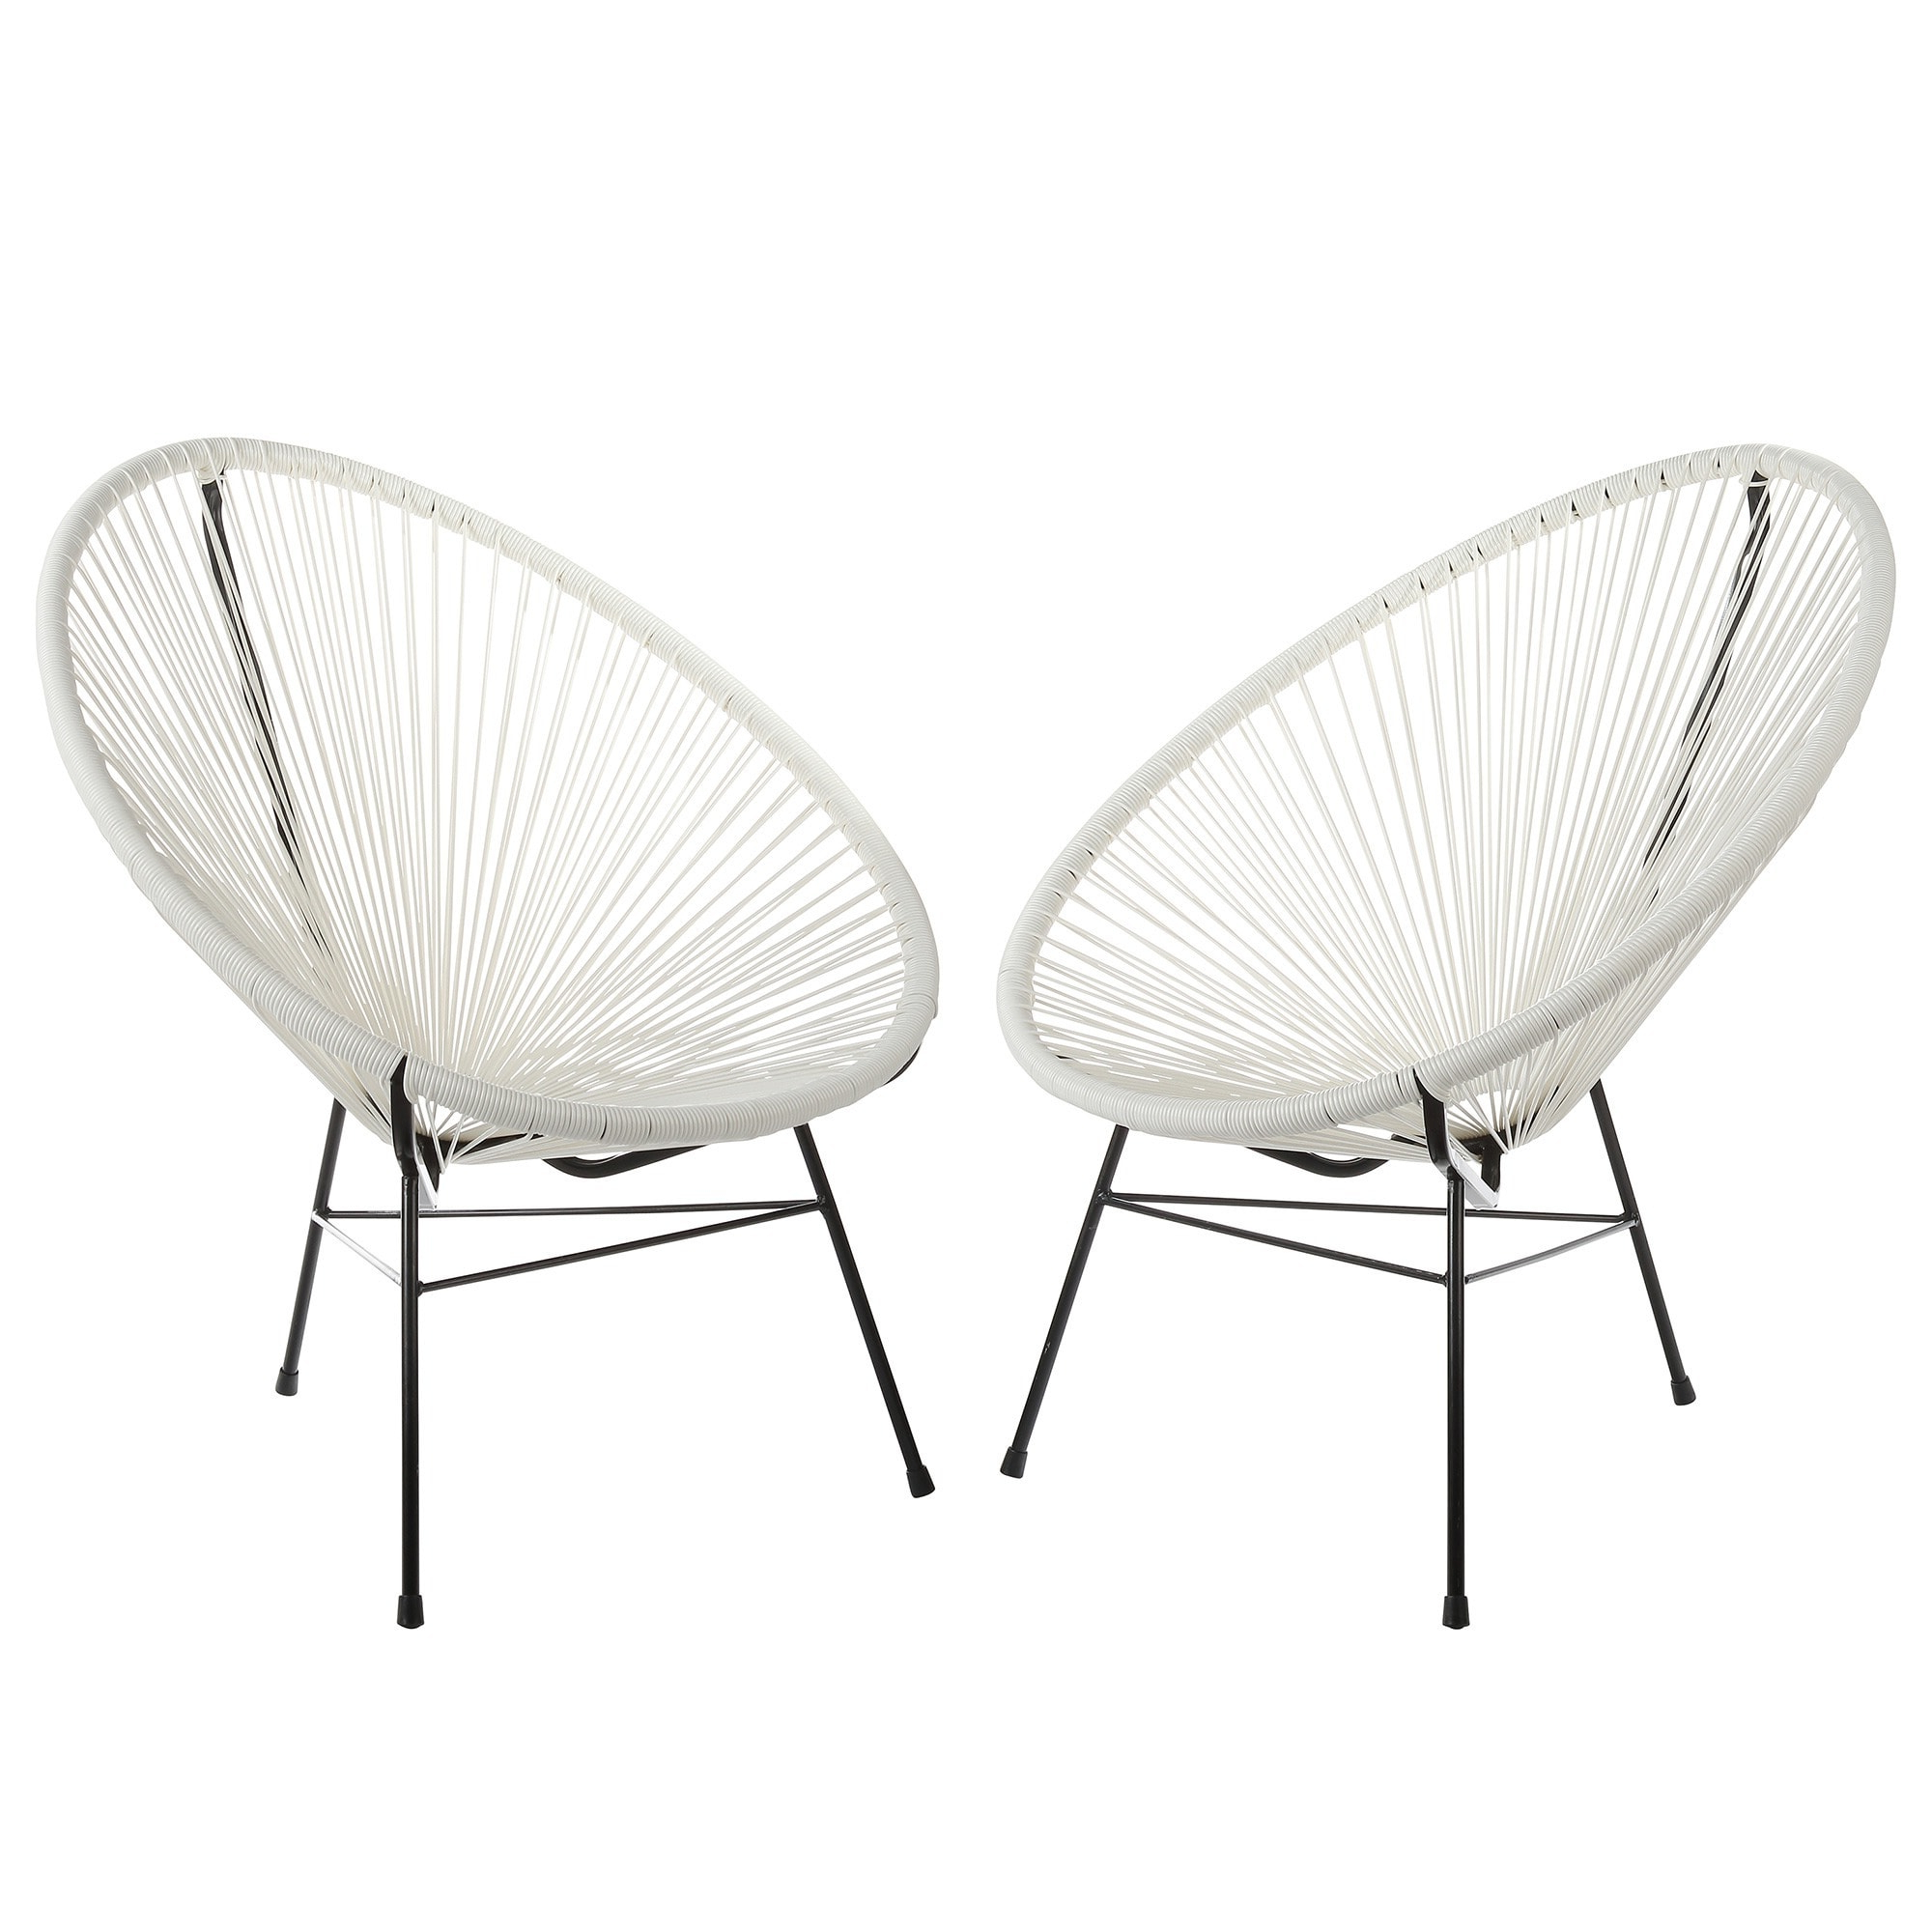 Set Of 2 Polivaz Woven Basket Lounge Chairs (china) (white Pertaining To Well Known Handmade Acapulco Woven Indoor Outdoor Lounge Chairs (View 14 of 25)